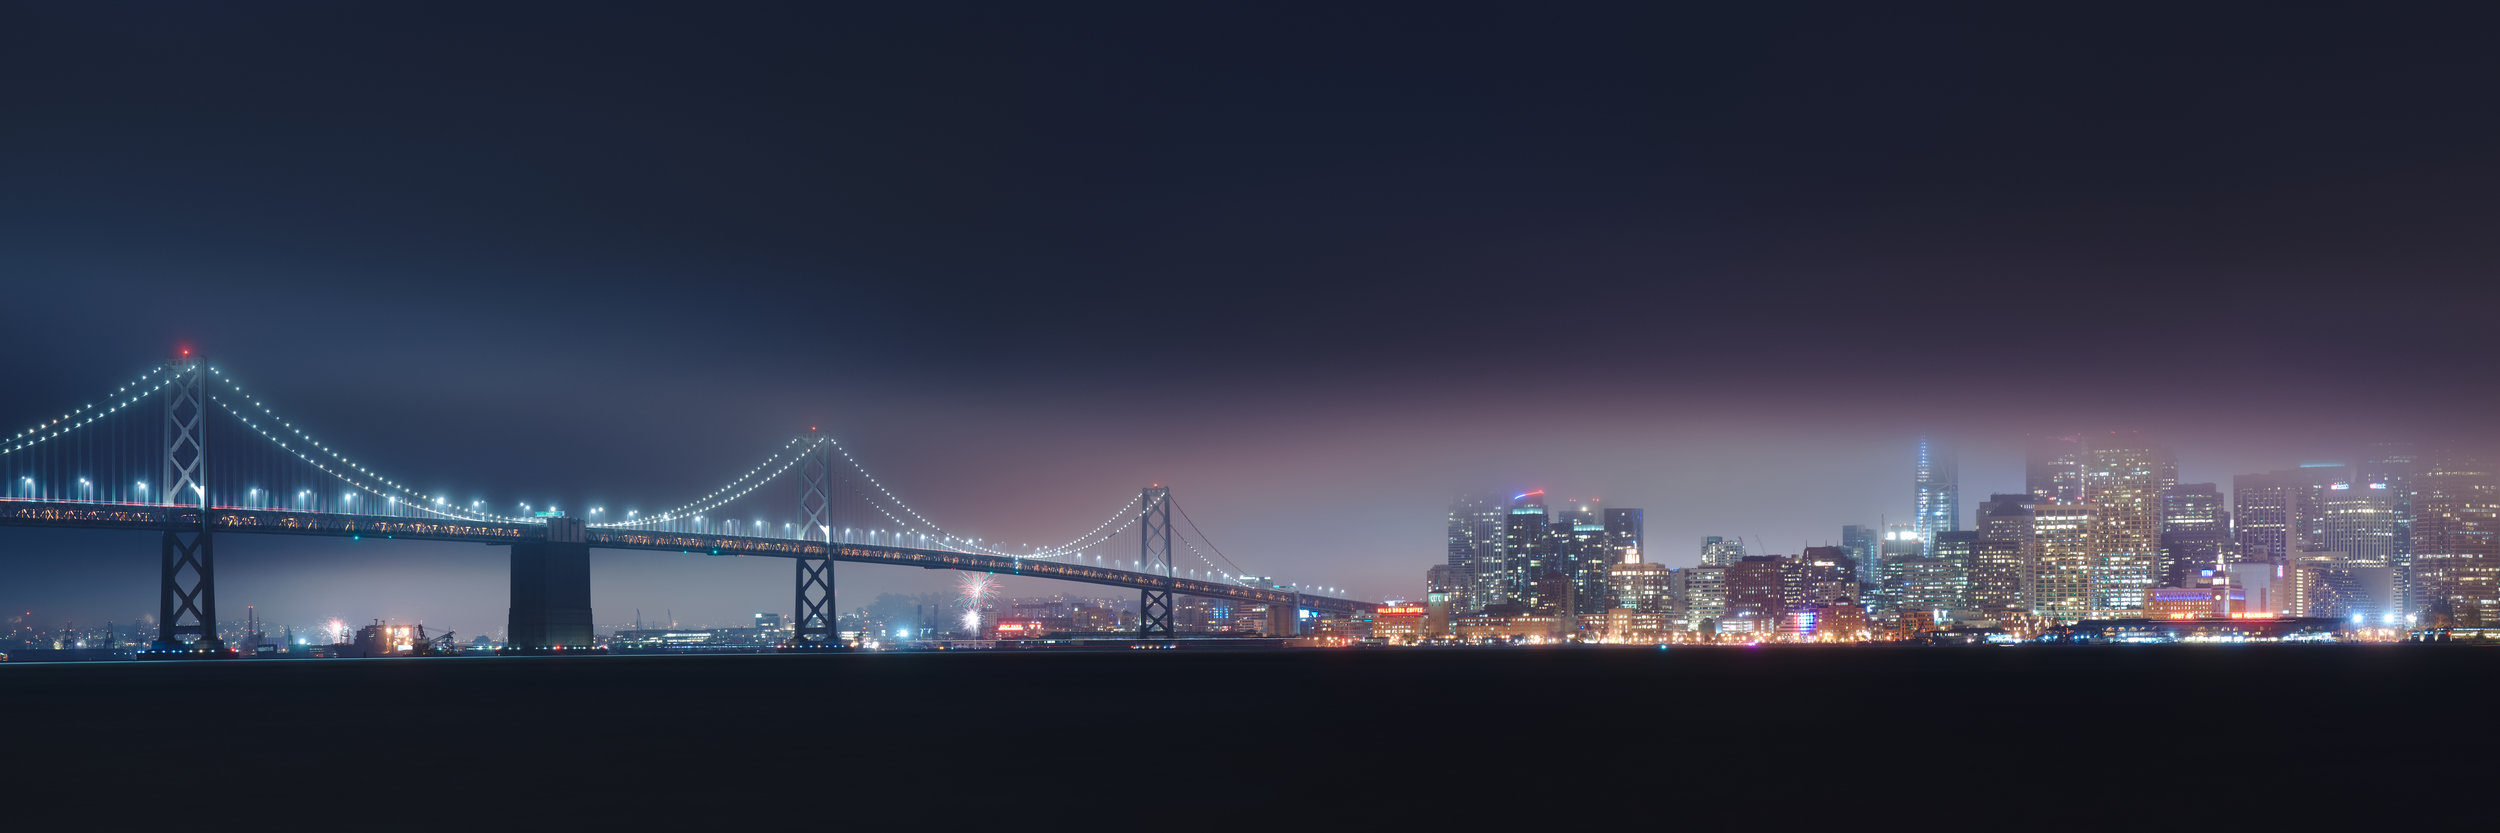 San_Francisco_skyline_on_a_foggy_4th_of_July_night.jpg